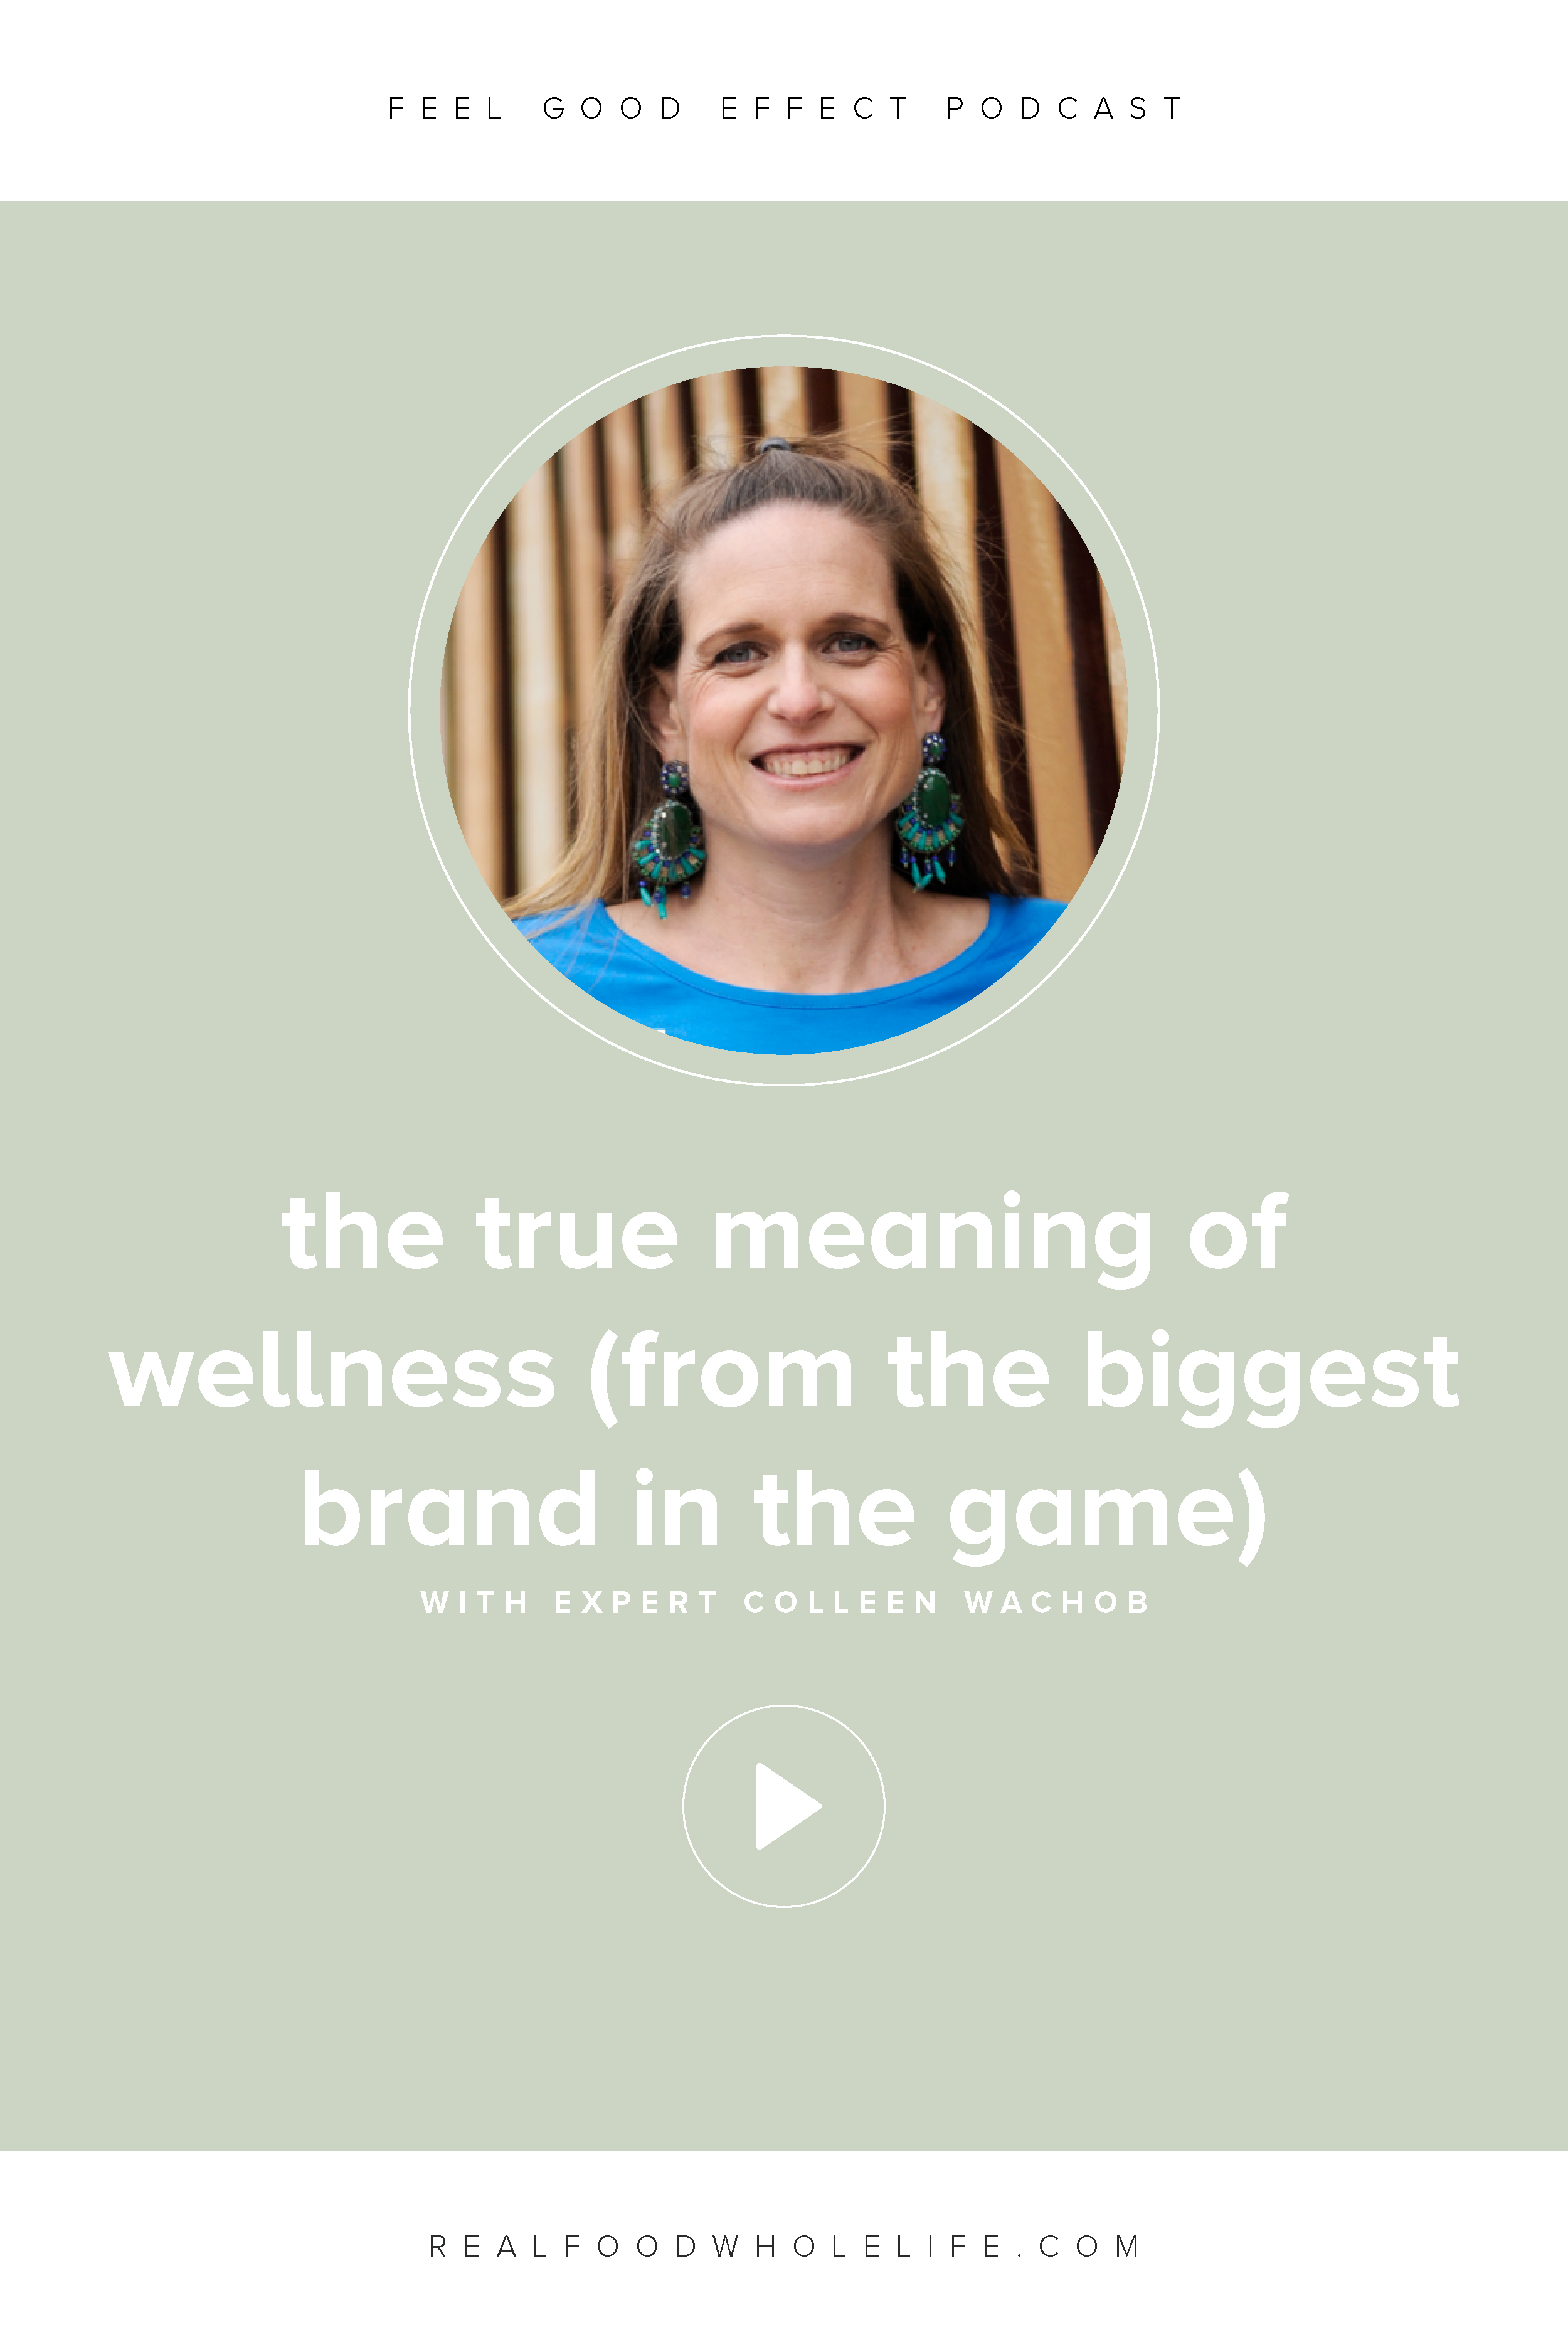 The True Meaning of Wellness, Colleen Wachob, mindbodygreen on the Feel Good Effect Podcast